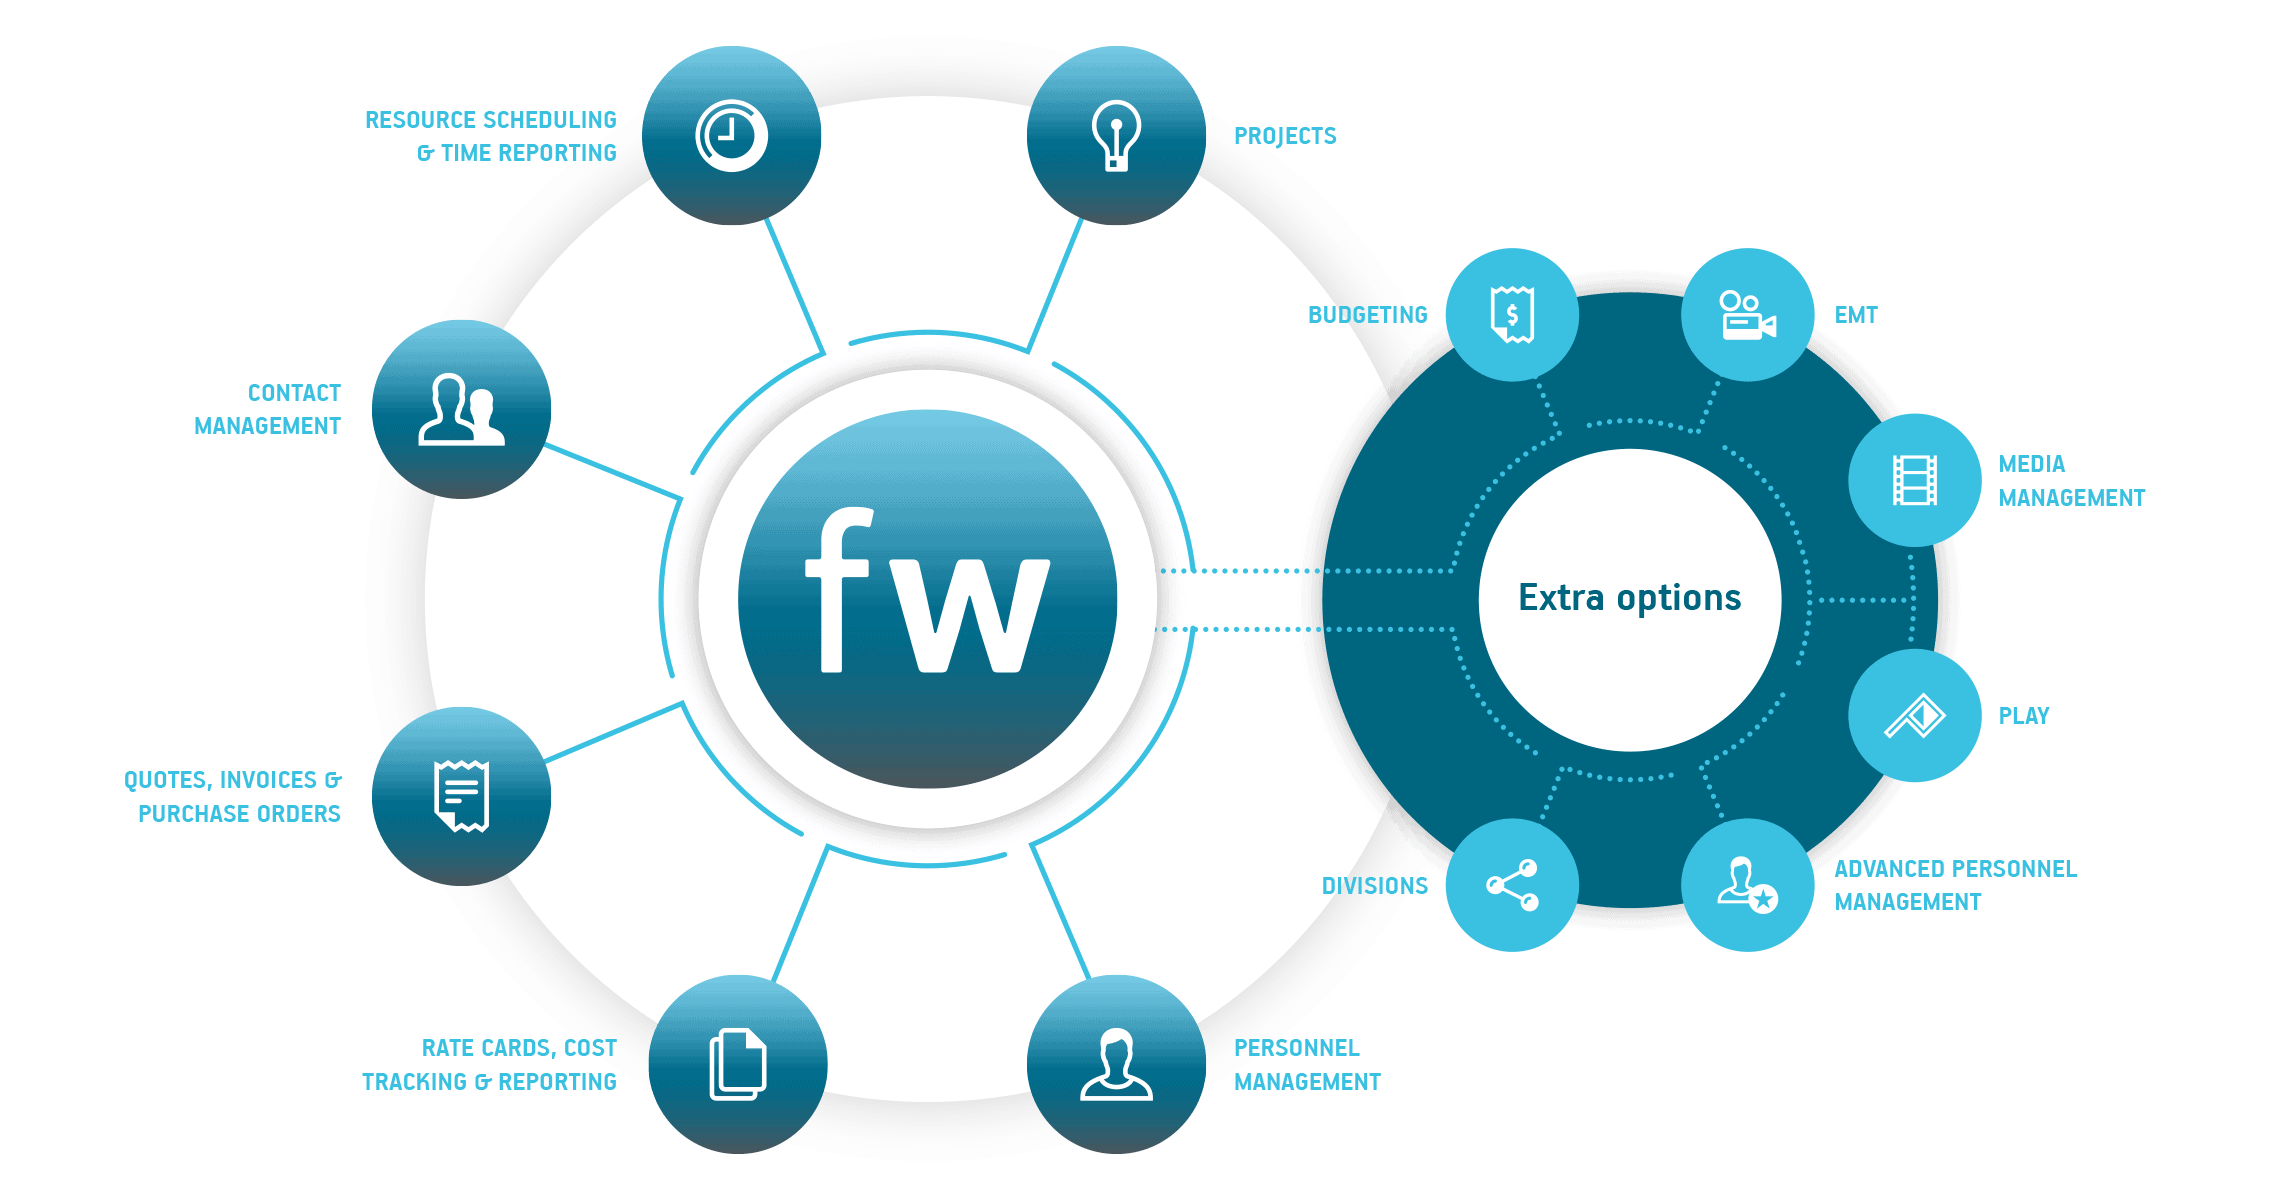 farmerswife extra options project management scheduling tools services for every business